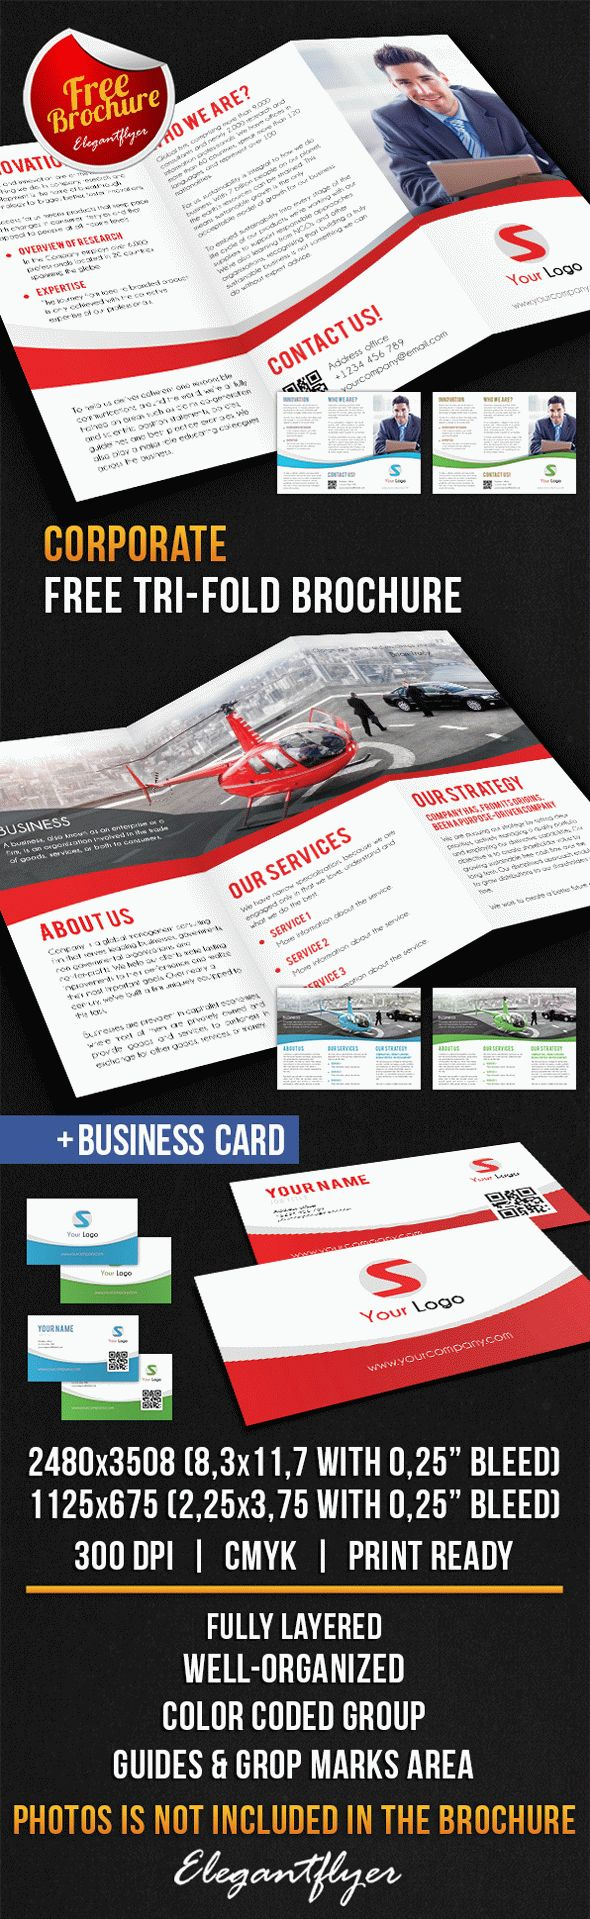 Corporate tri fold brochure free psd template by for Tri fold brochure template psd